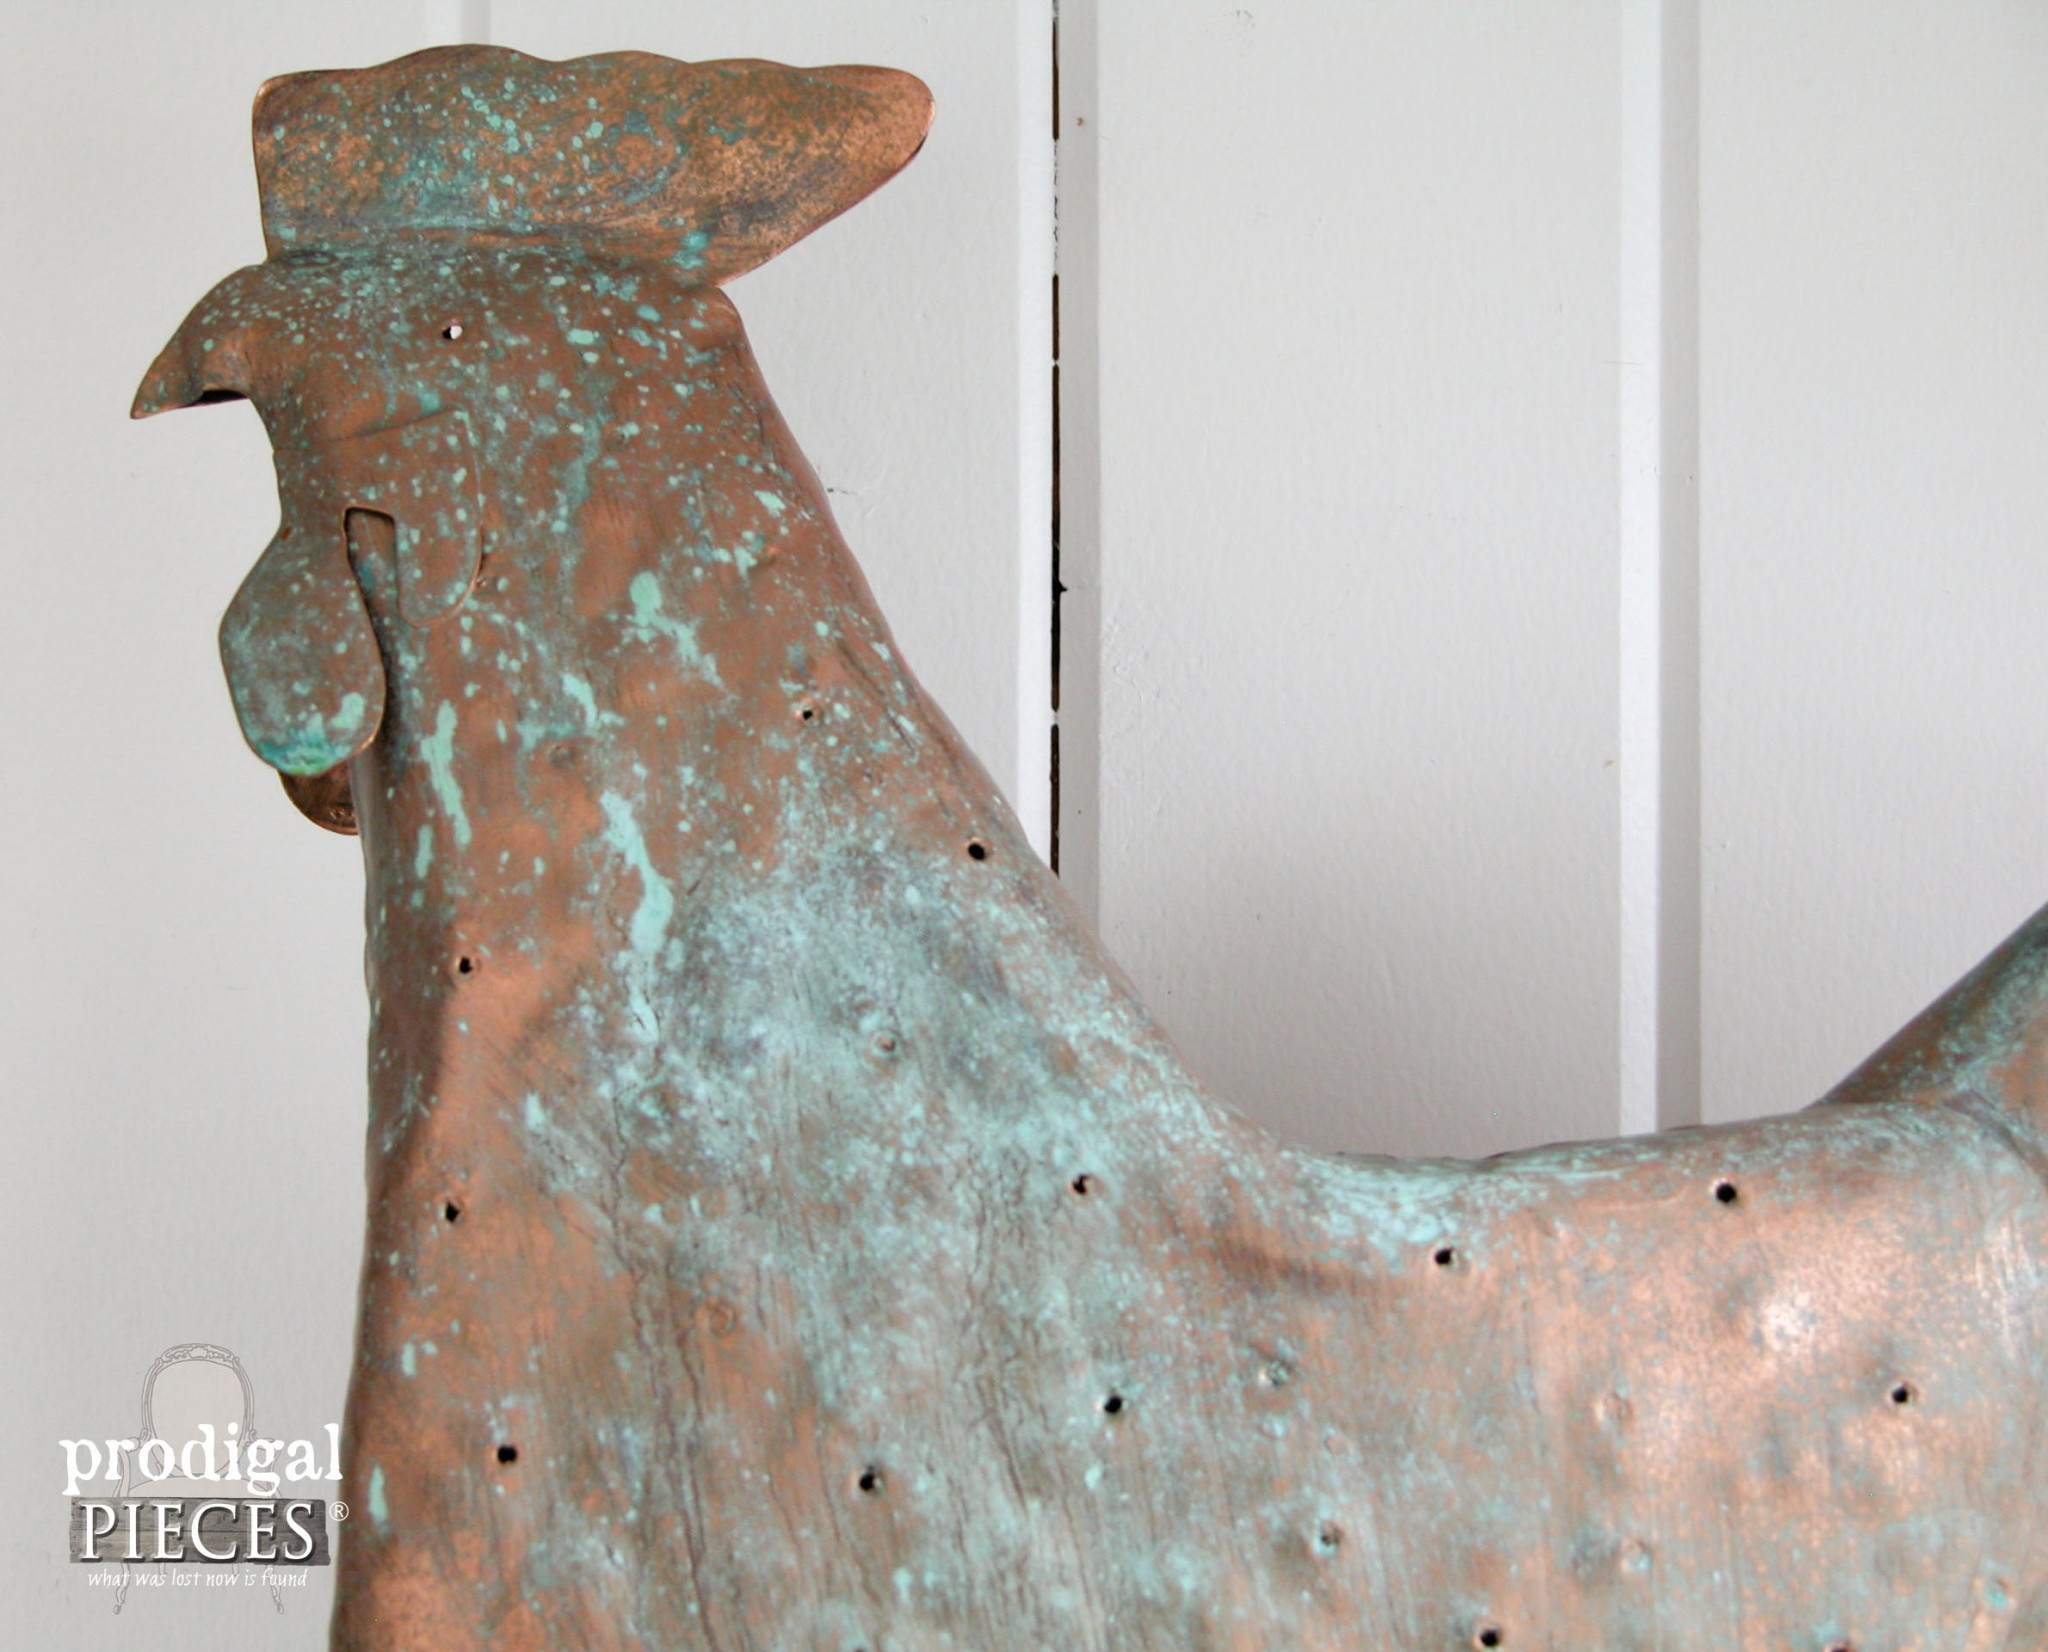 Close-up of Copper Patina on Reclaimed Metal Art by Prodigal Pieces | www.prodigalpieces.com